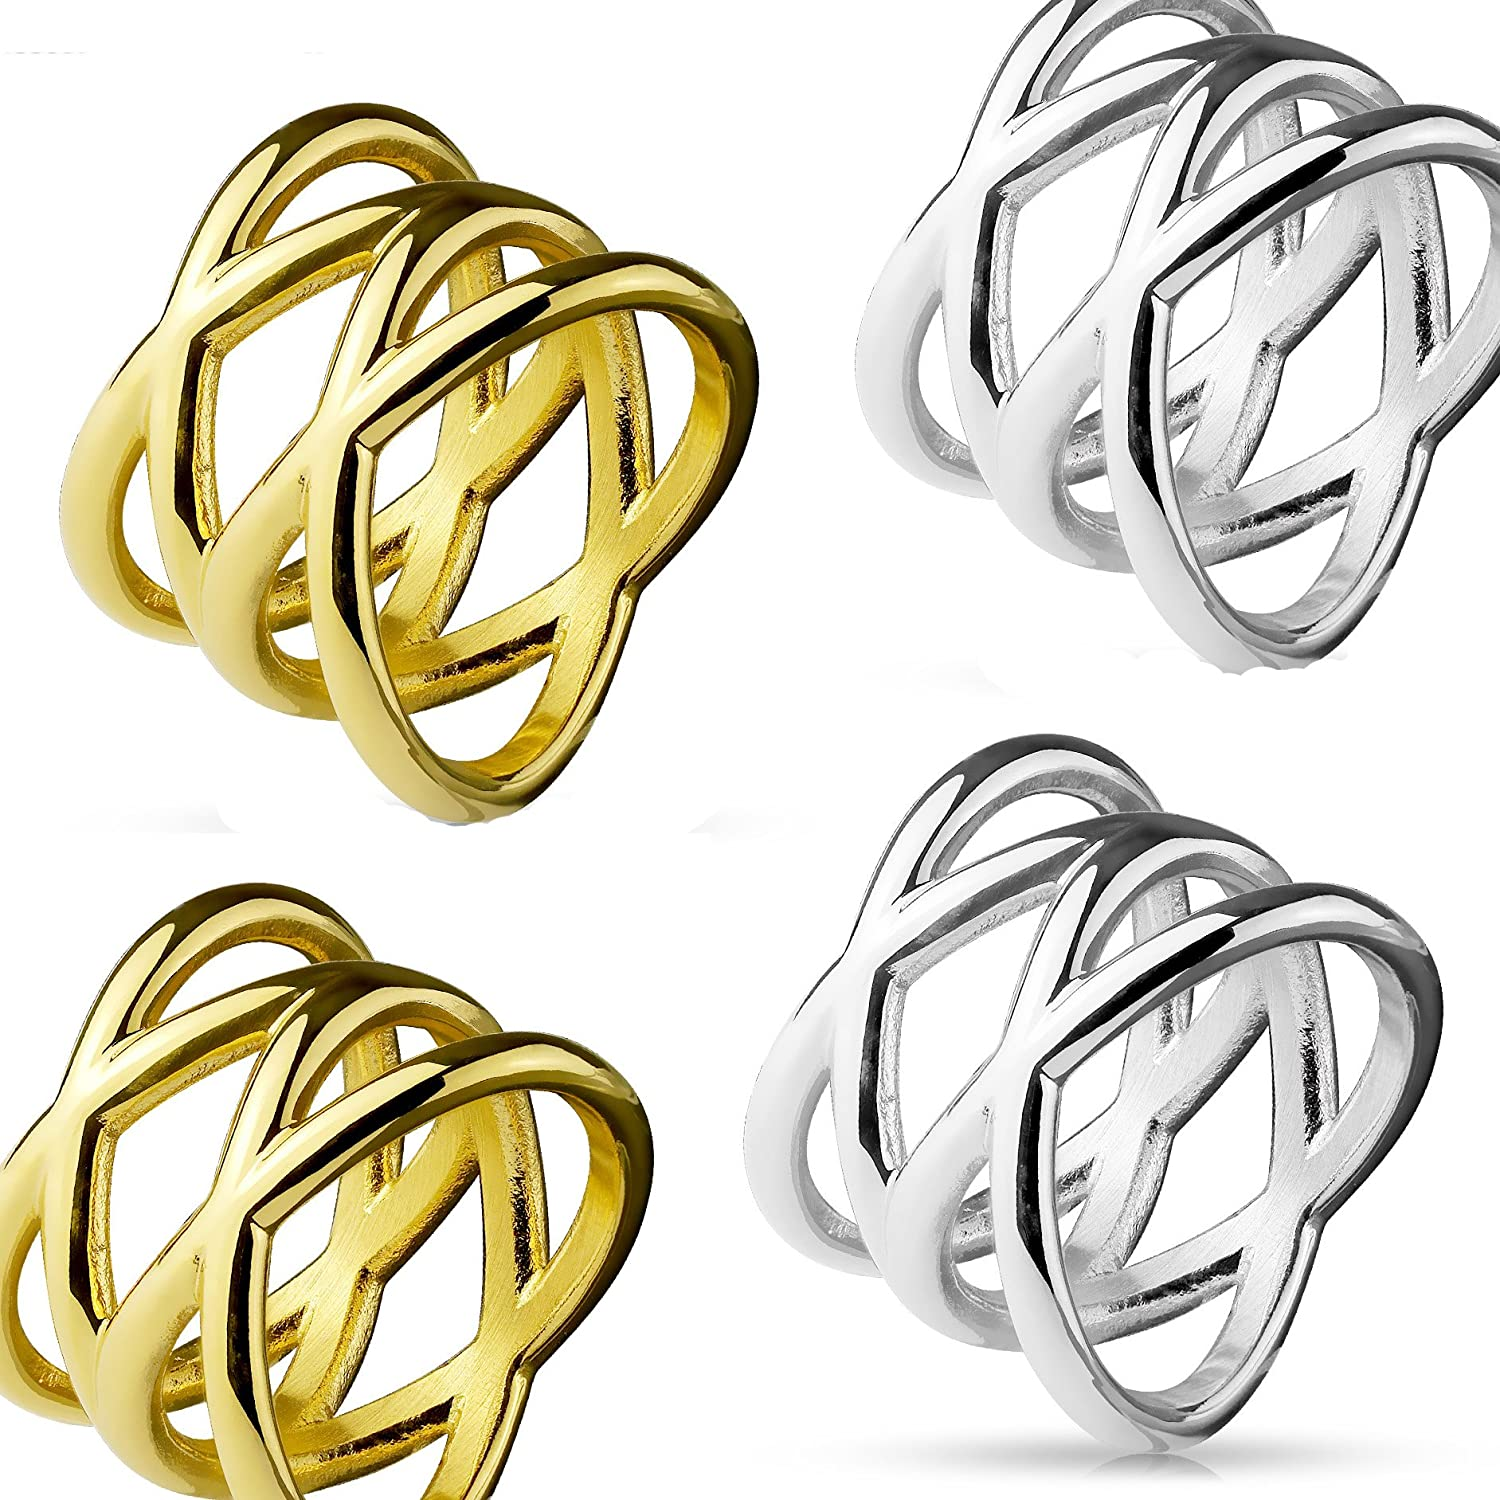 4 STAINLESS STEEL RINGS X STYLE GOLD AND SILVER